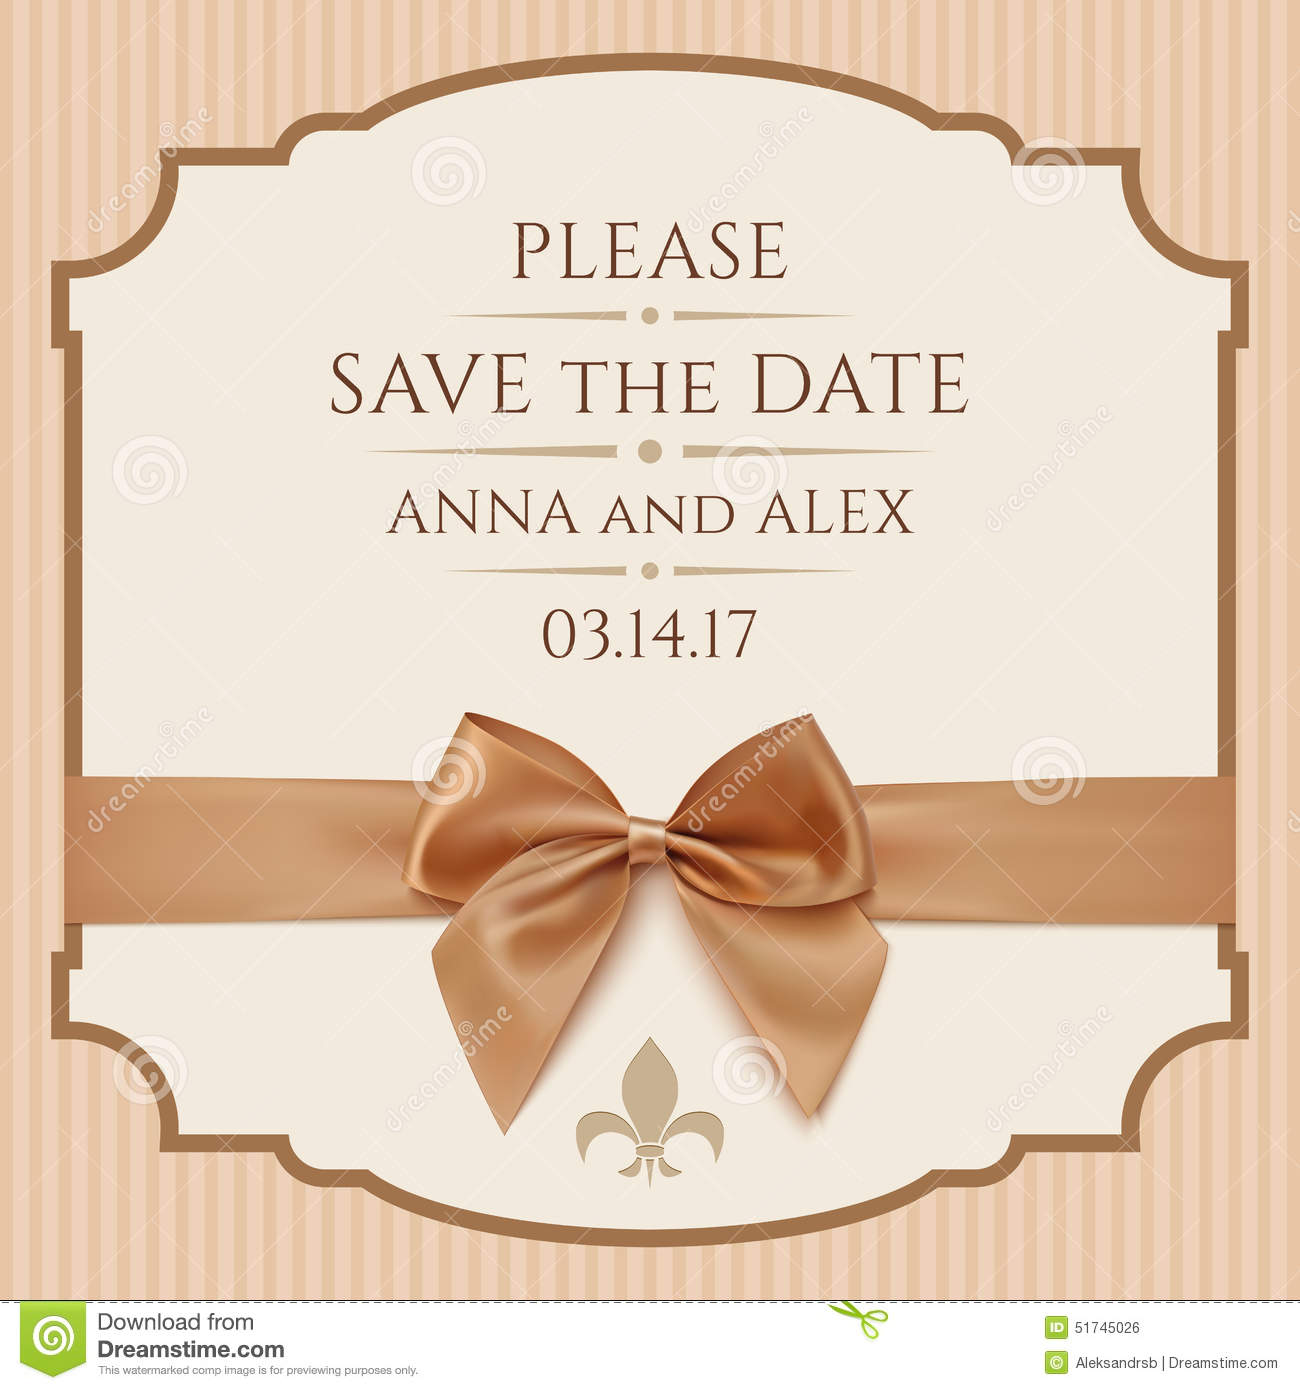 free vintage save the date templates - save the date wedding invitation card stock illustration